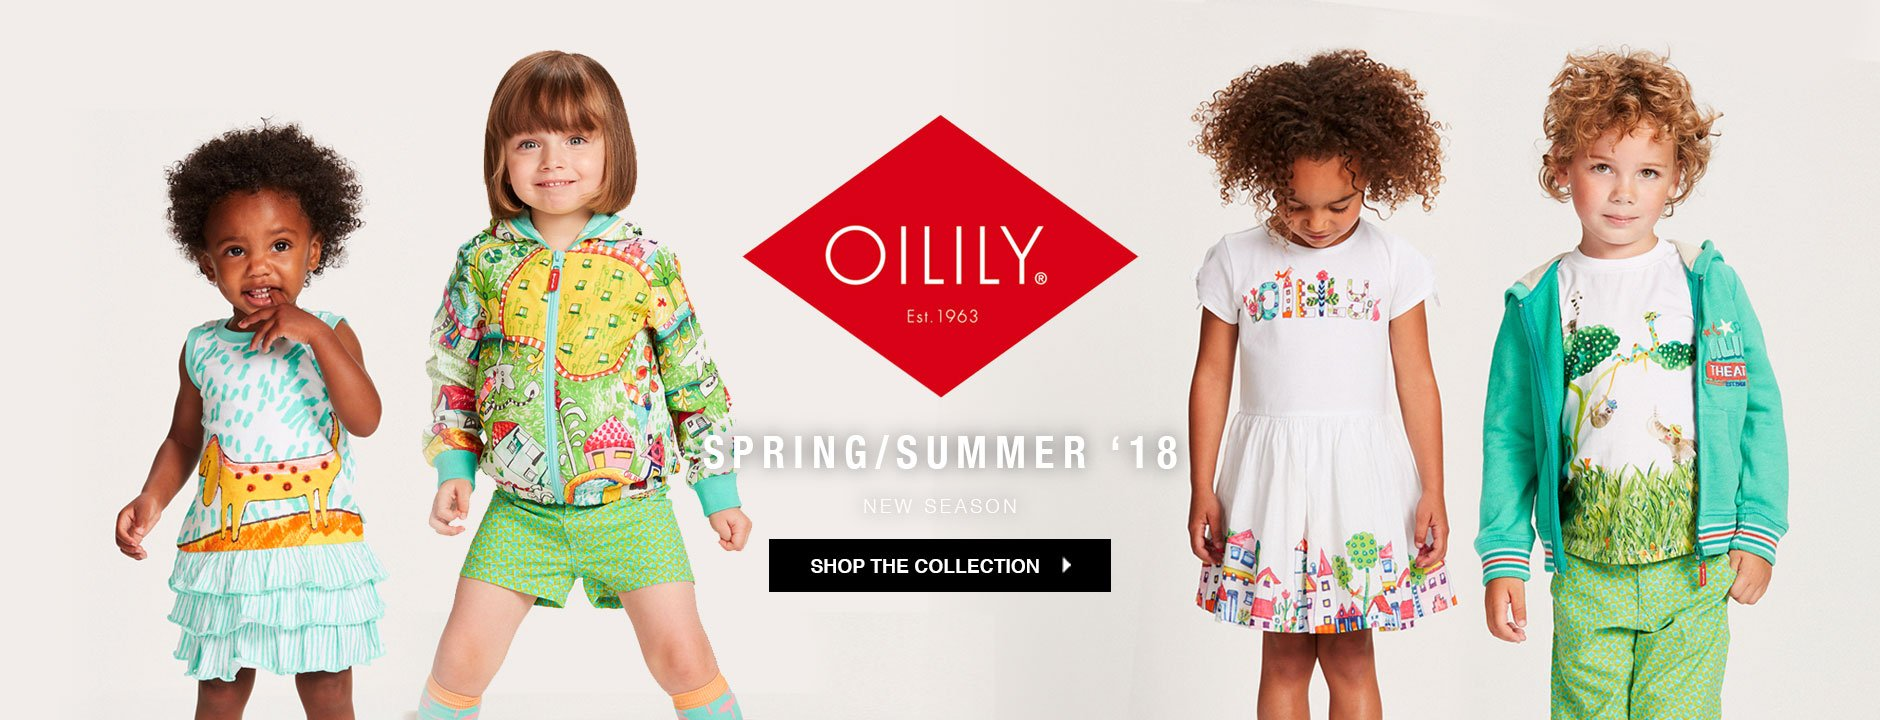 Oilily spring summer 18 collection